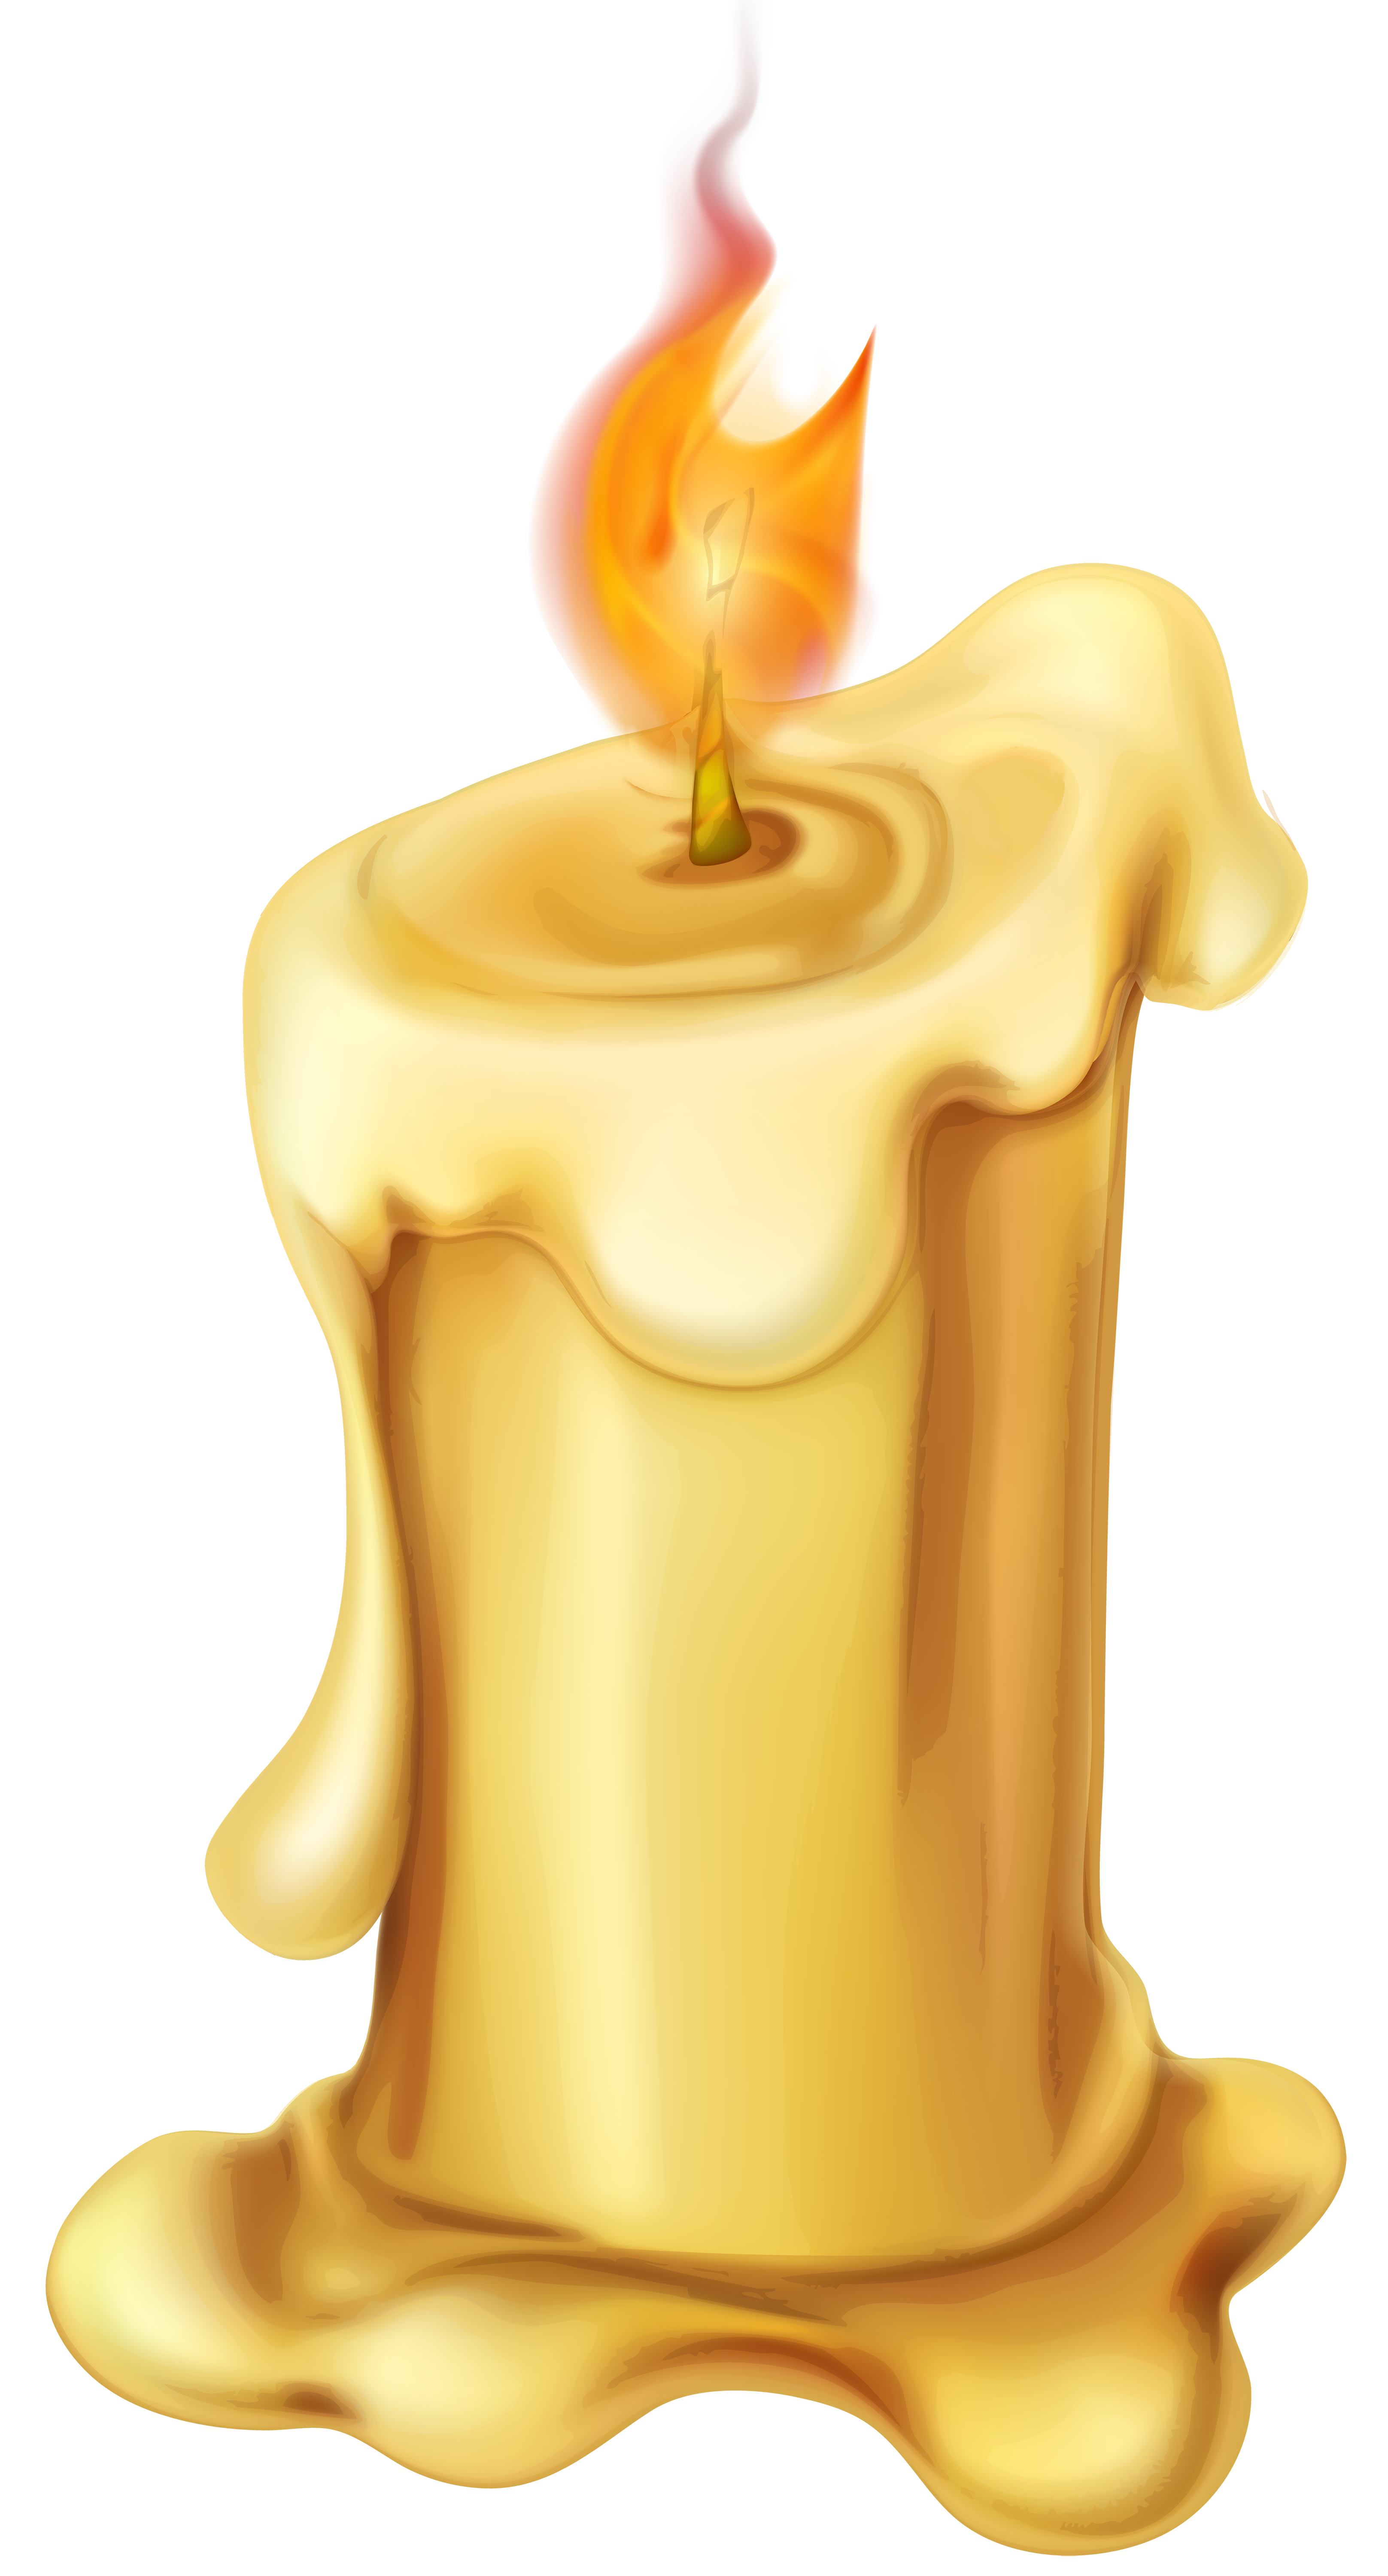 Png clip art best. Clipart books candle